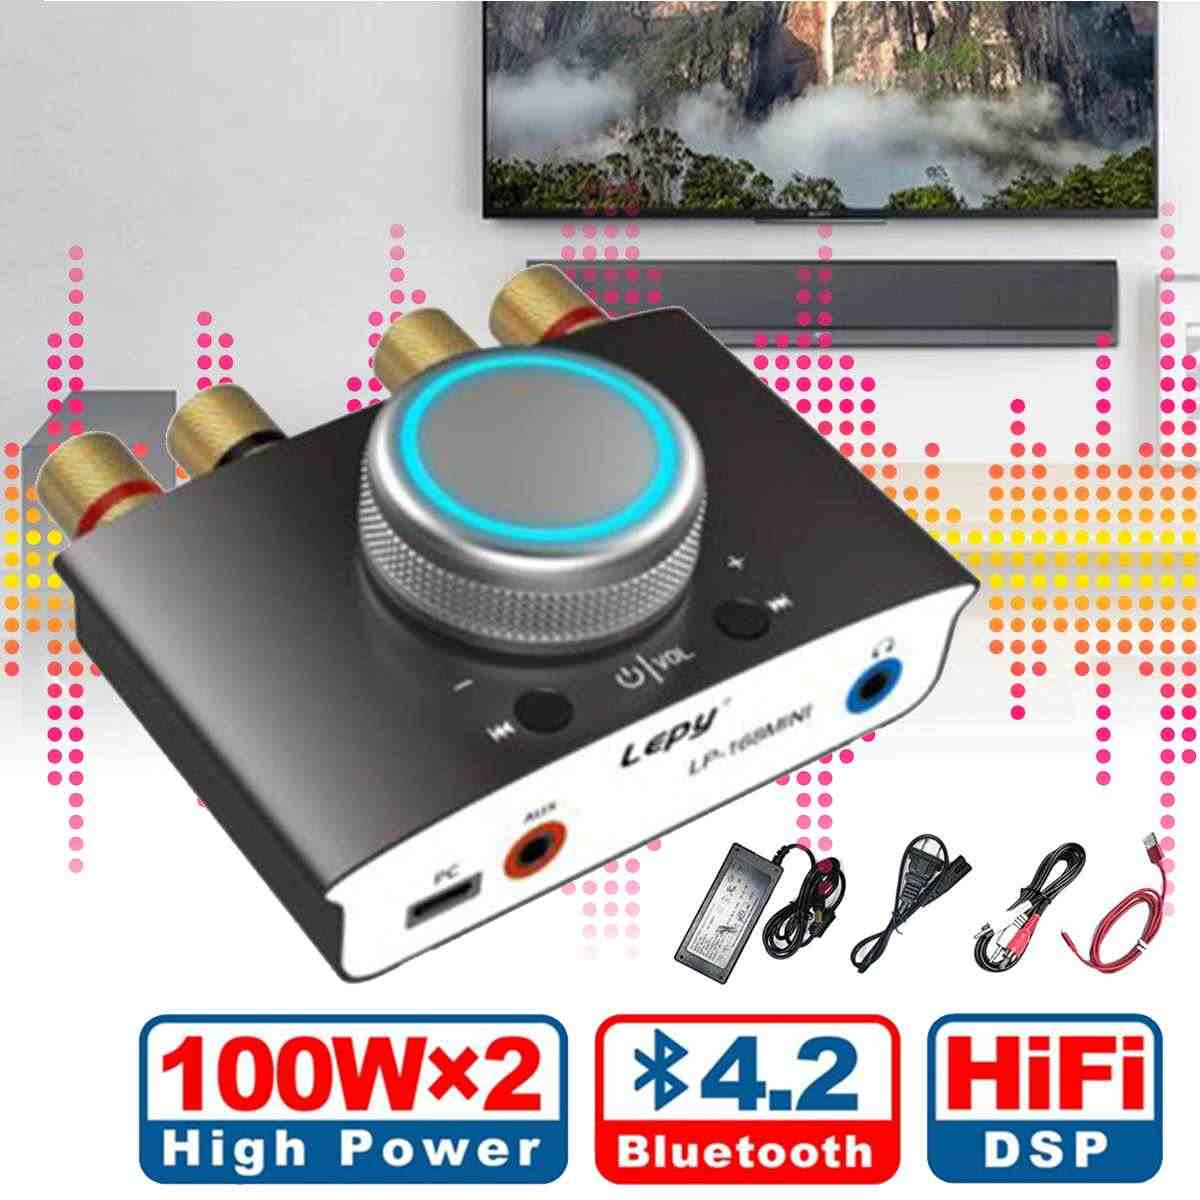 Hifi Stereo Headphone Amp Mini bluetooth 4.2 Tpa3116 Digital Power Amplifier 100w+100w With Adapter Mini Amplifier Class D